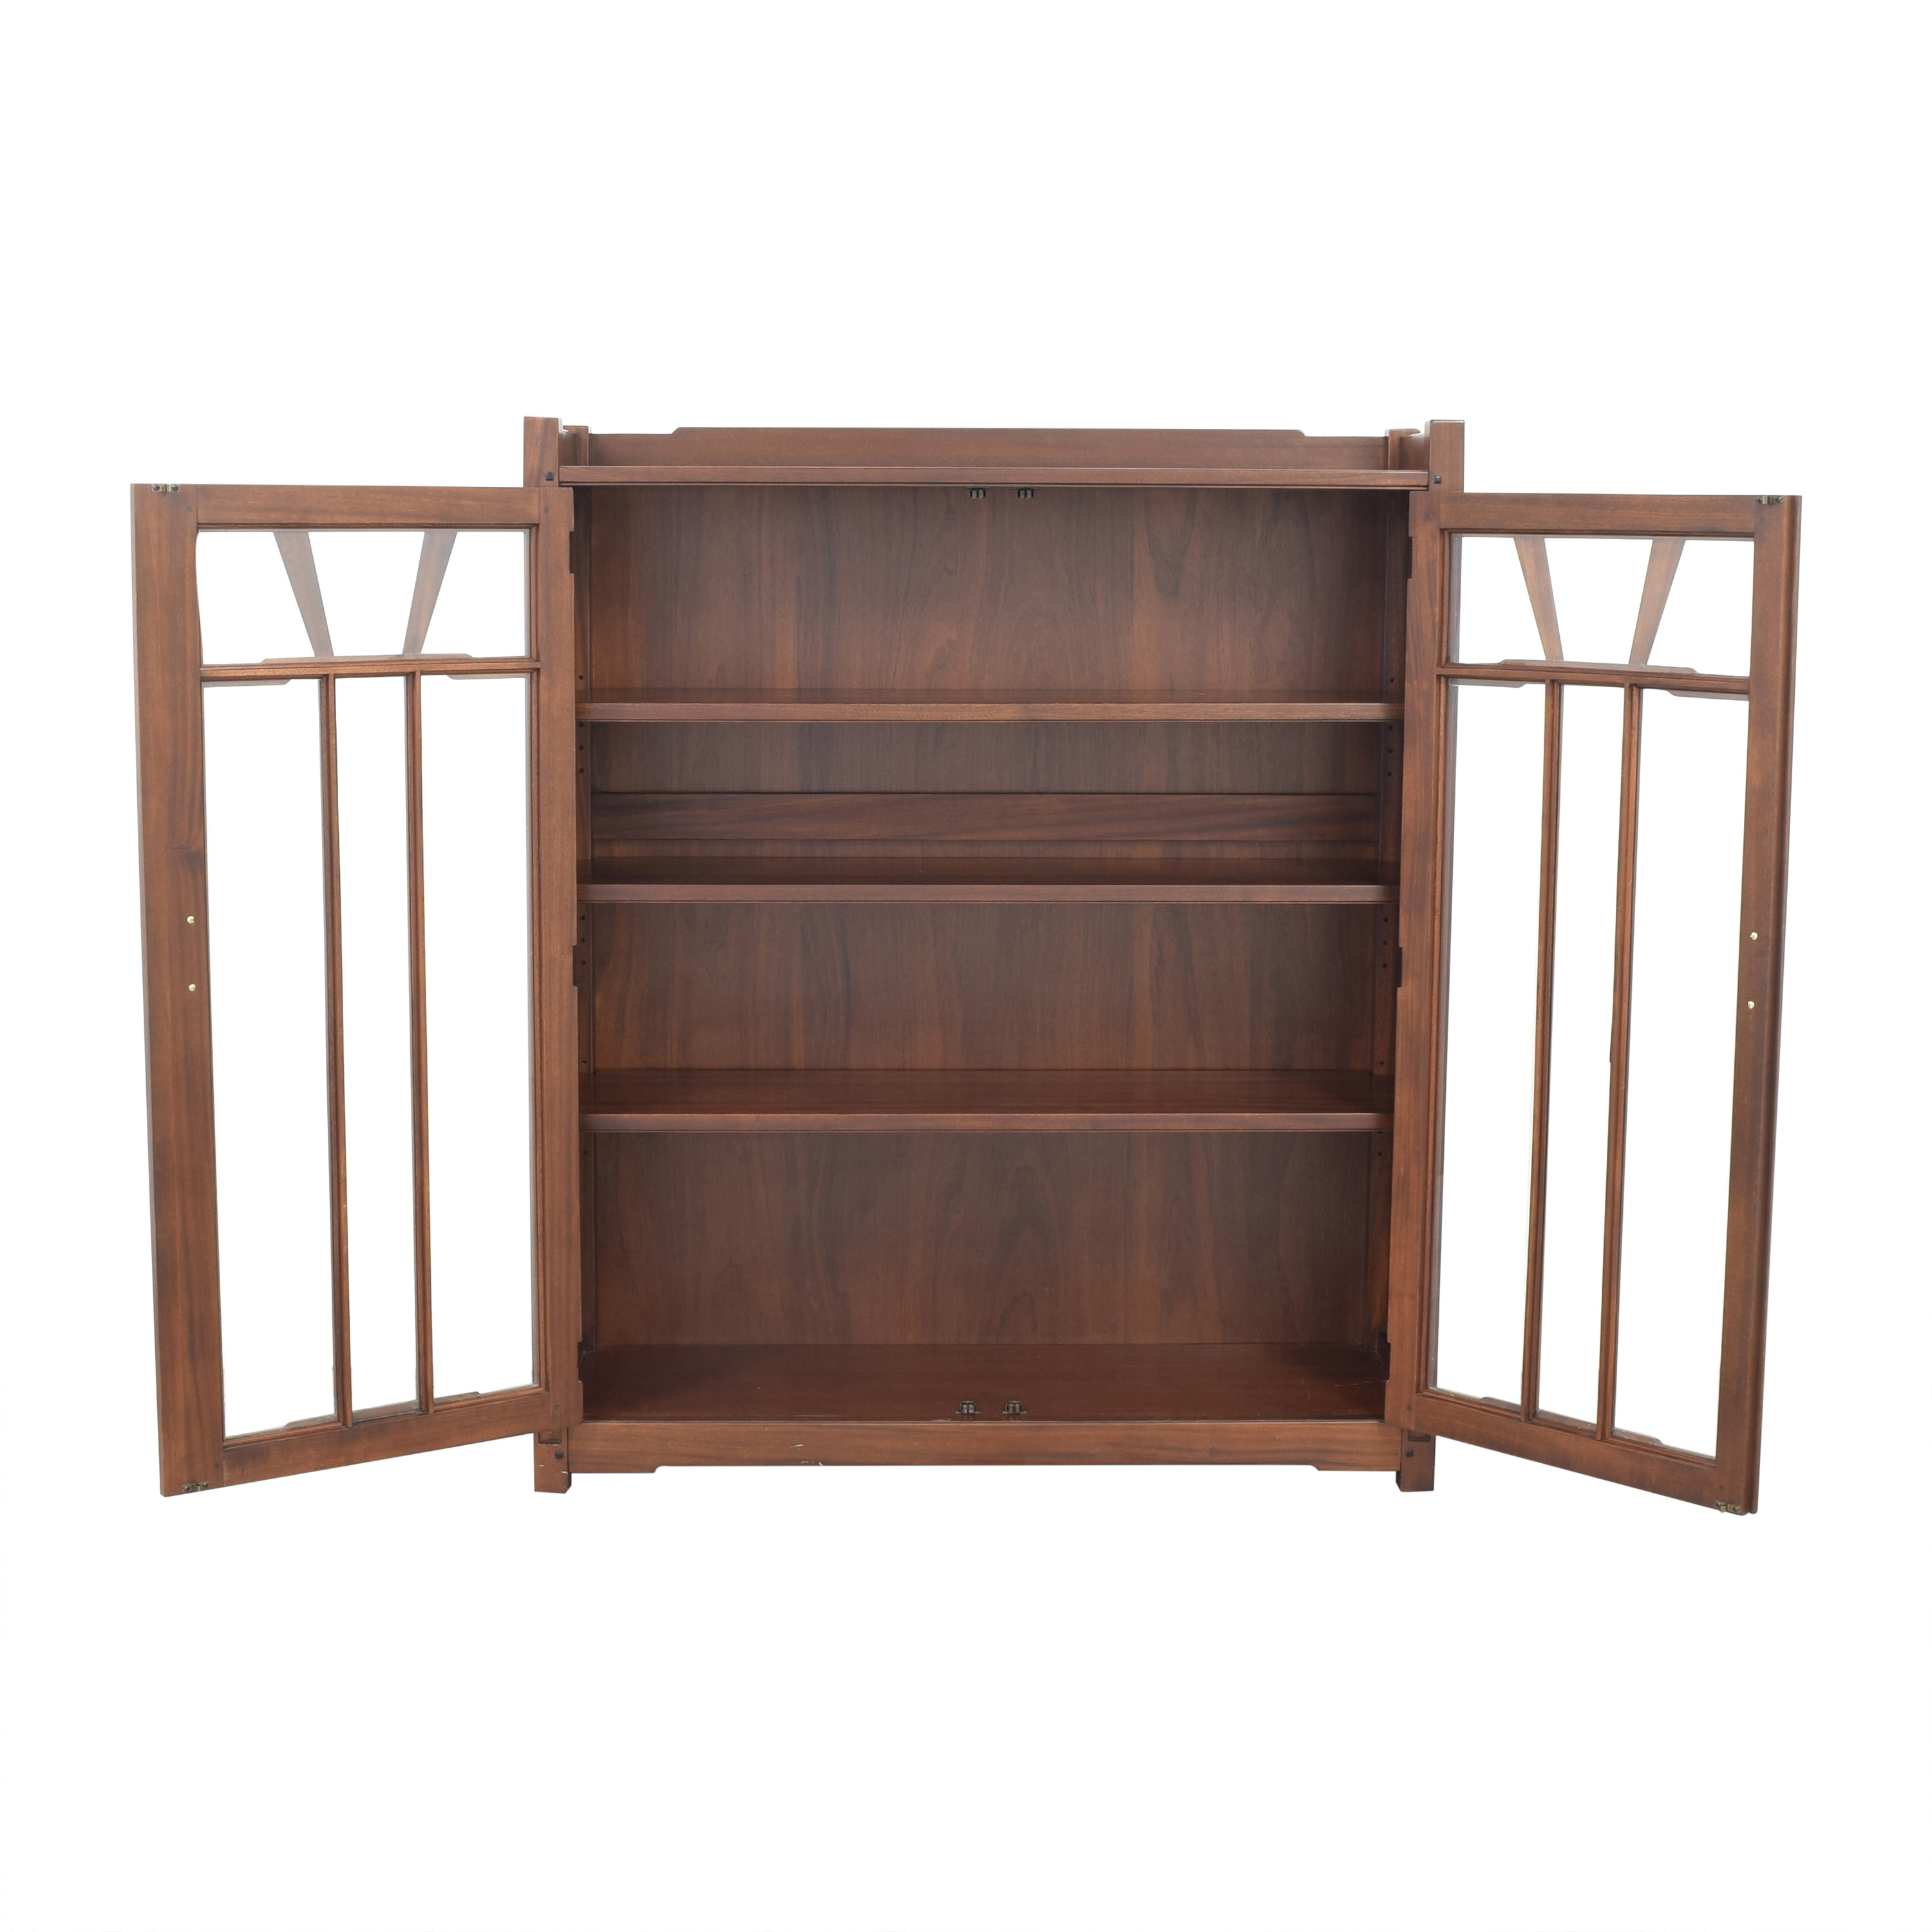 Stickley Furniture Stickley Gamble House Bookcase on sale